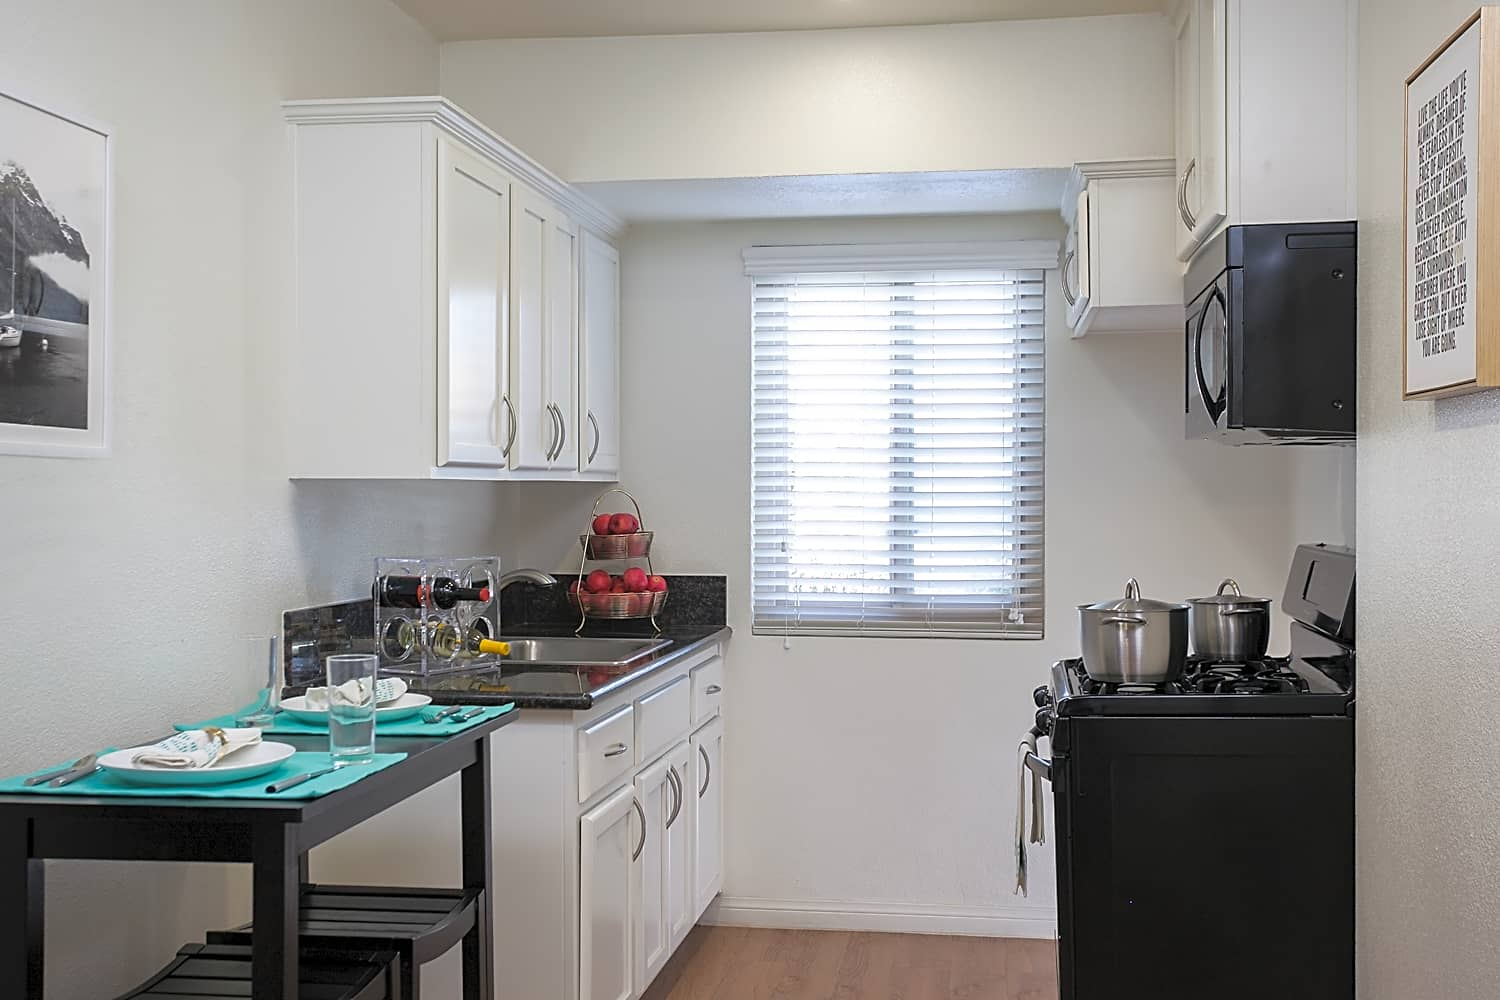 Apartments for Rent in Santa Ana, CA - California Palms Kitchen